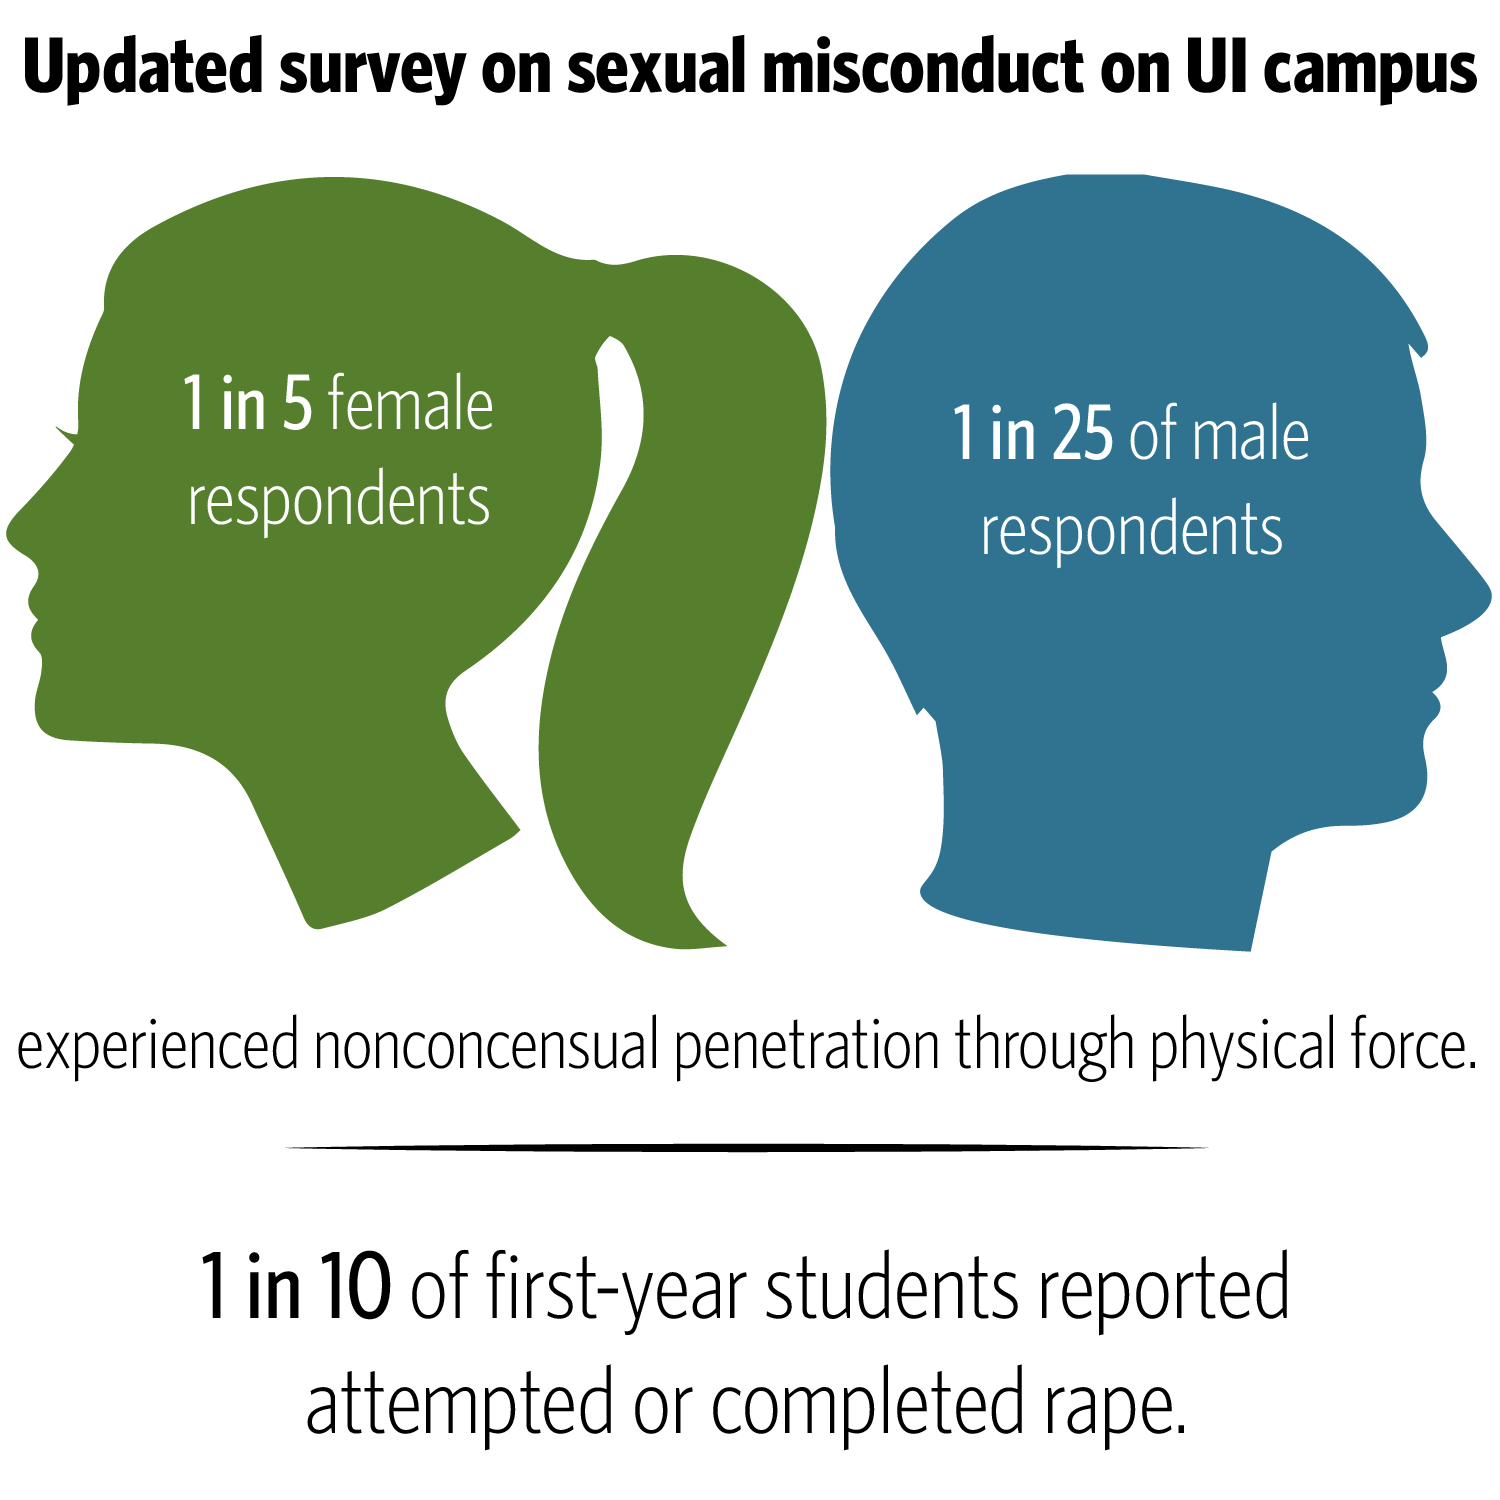 Source: At Illinois We Care